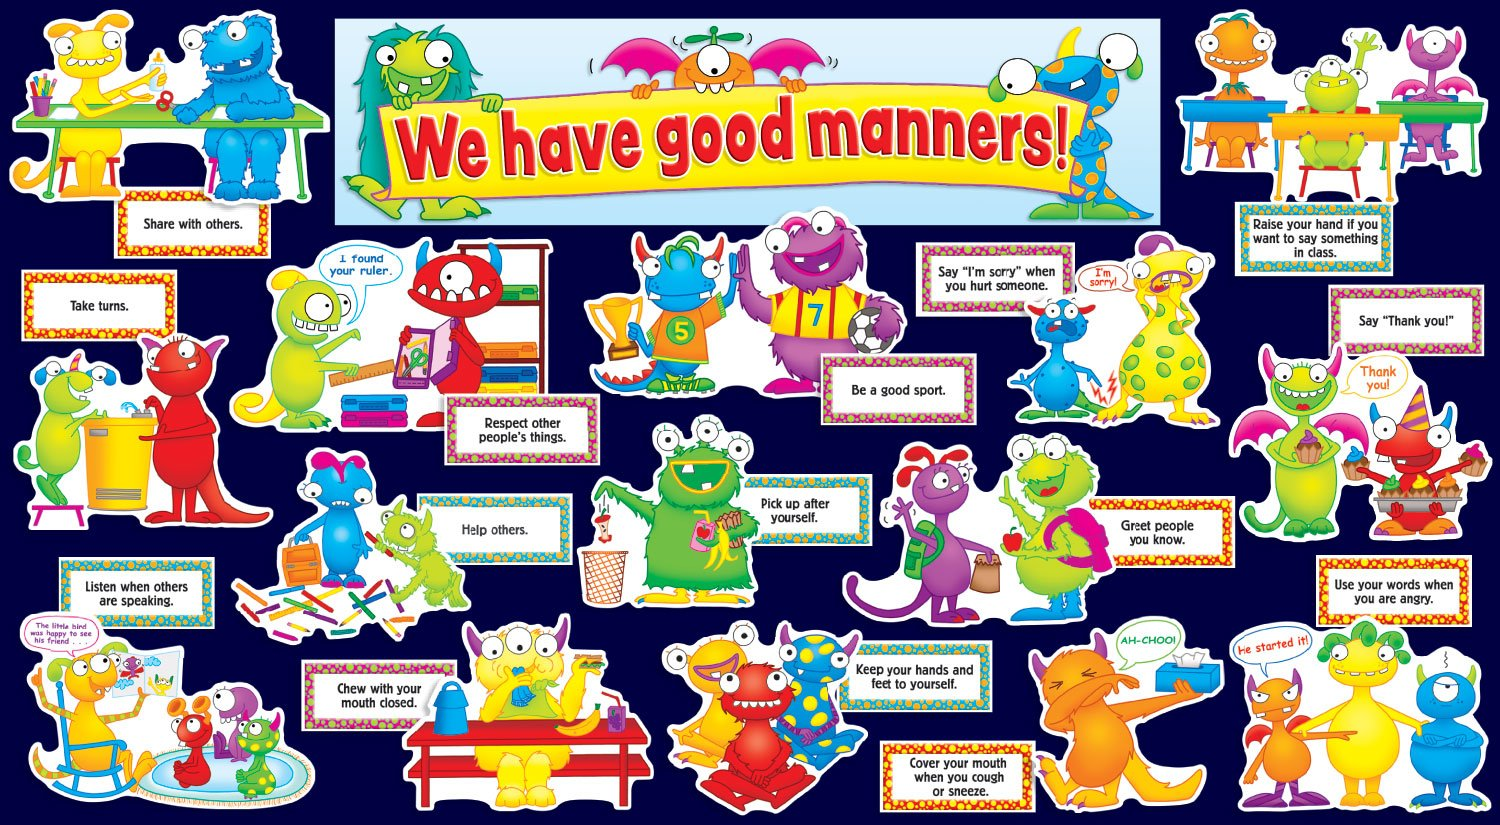 good manners and decorum manners are conducting oneself essay Junior manners are manners essay on importance of social etiquette allows your dog good manners david didau: 23rd march, cards, as well througout our conduct.